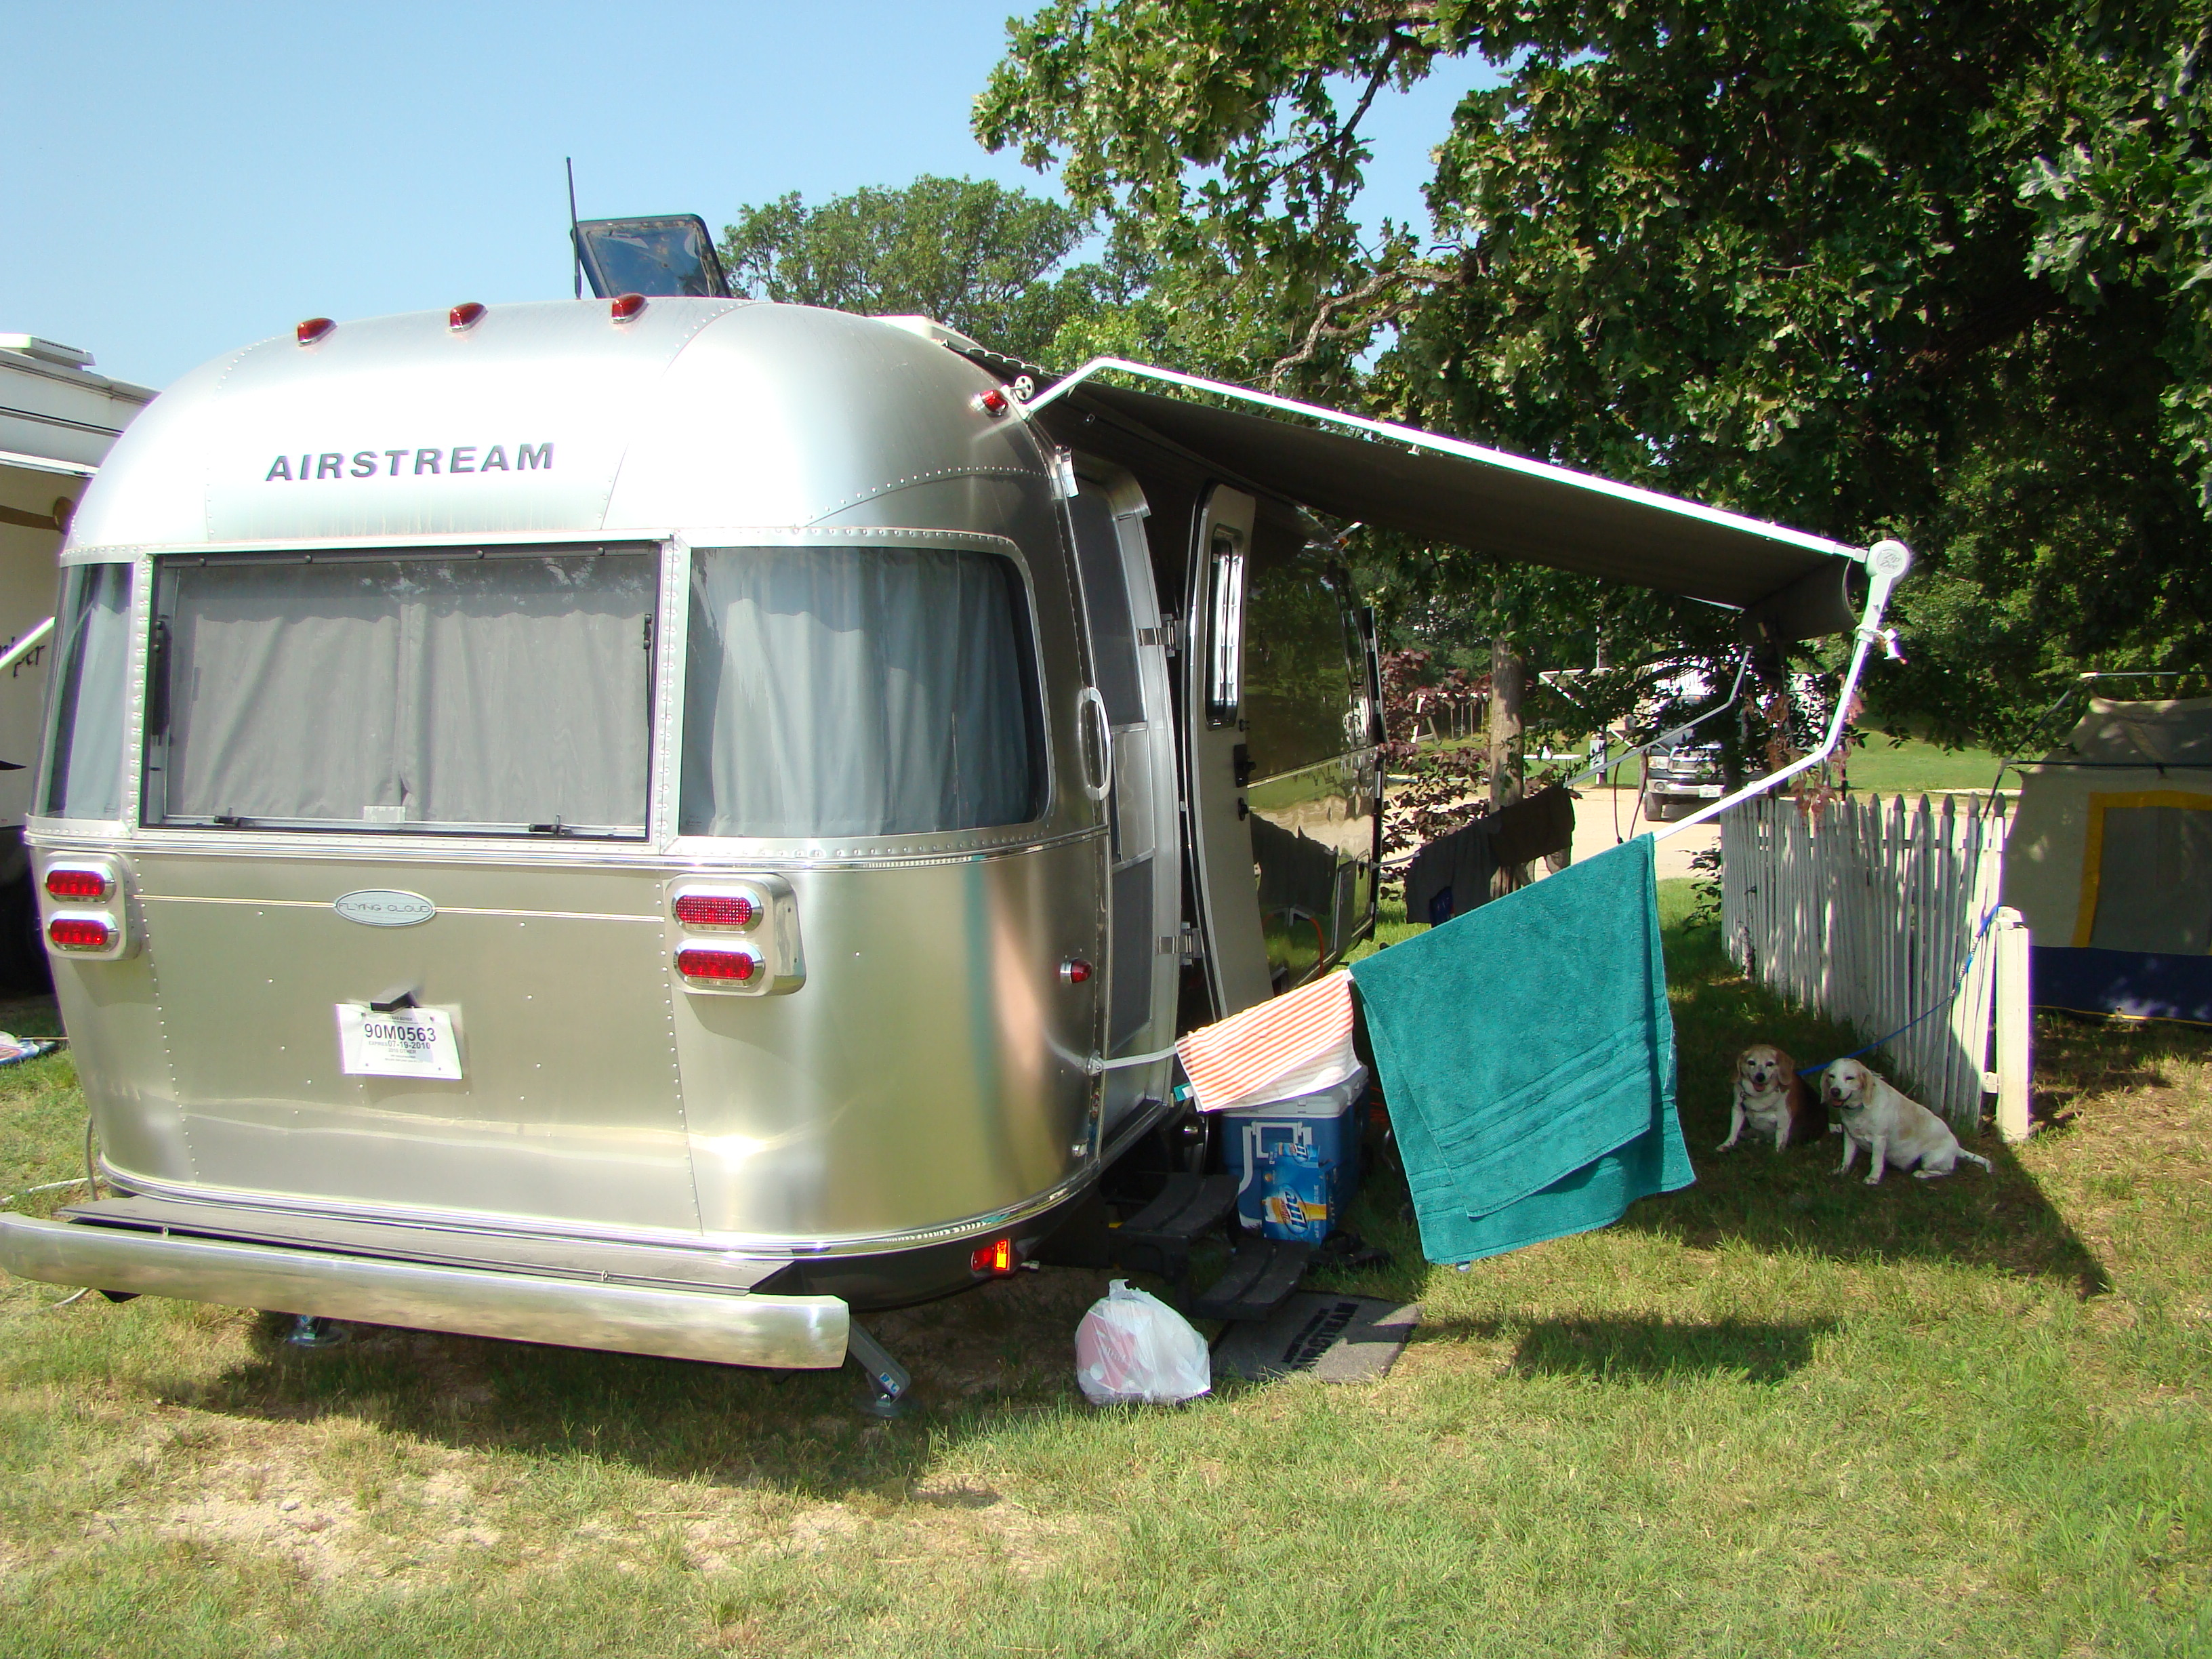 camping in an airstream kelly mcmichael. Black Bedroom Furniture Sets. Home Design Ideas